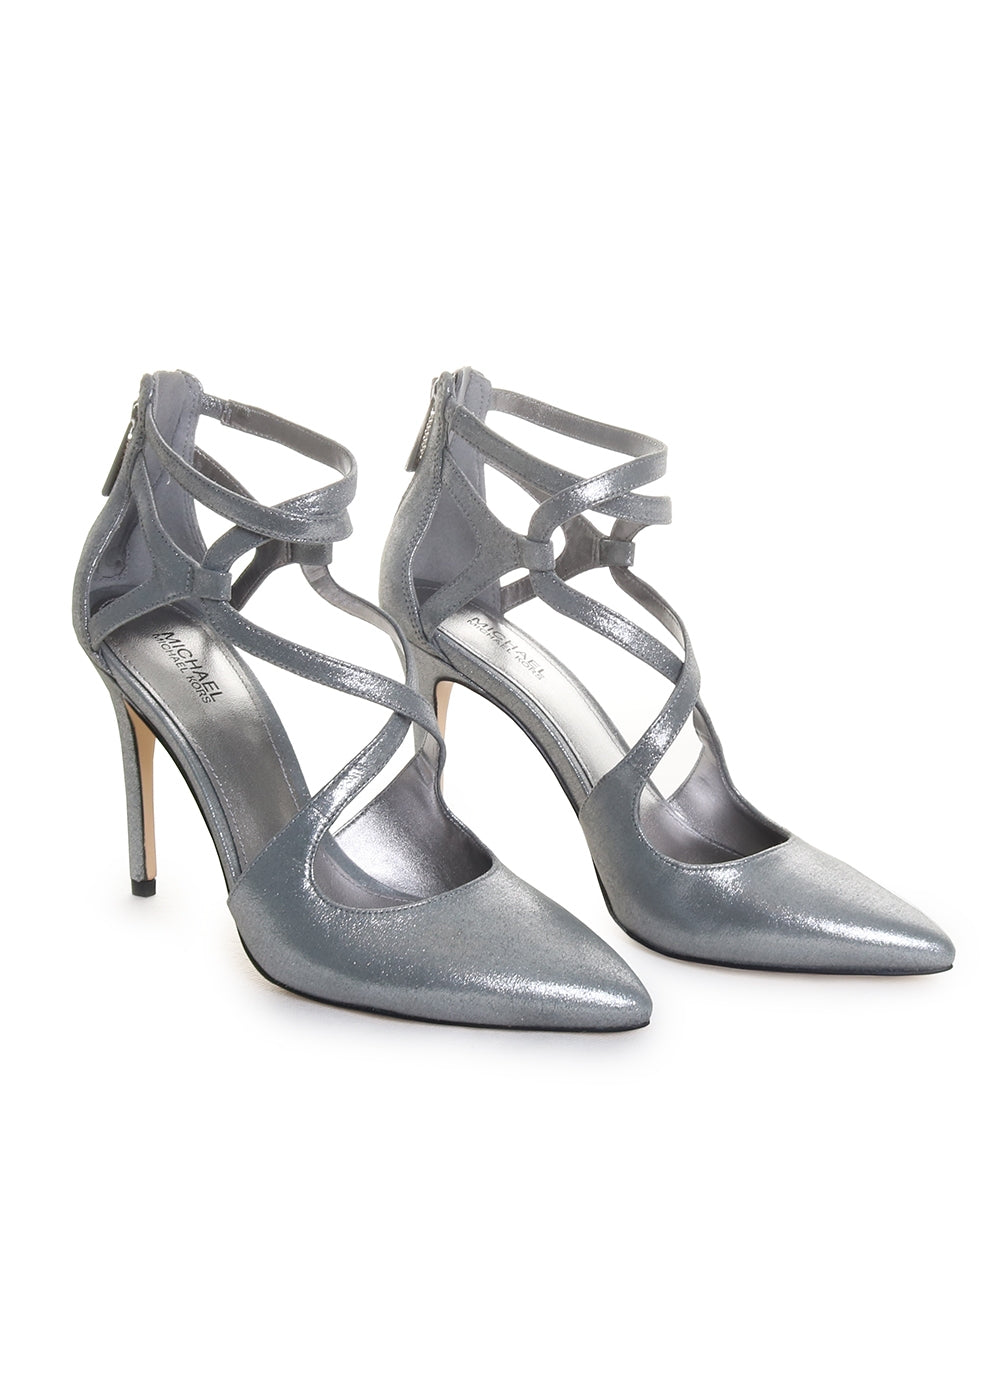 Michael Kors Catia Strappy Heeled Sandal Pumps in Sterling